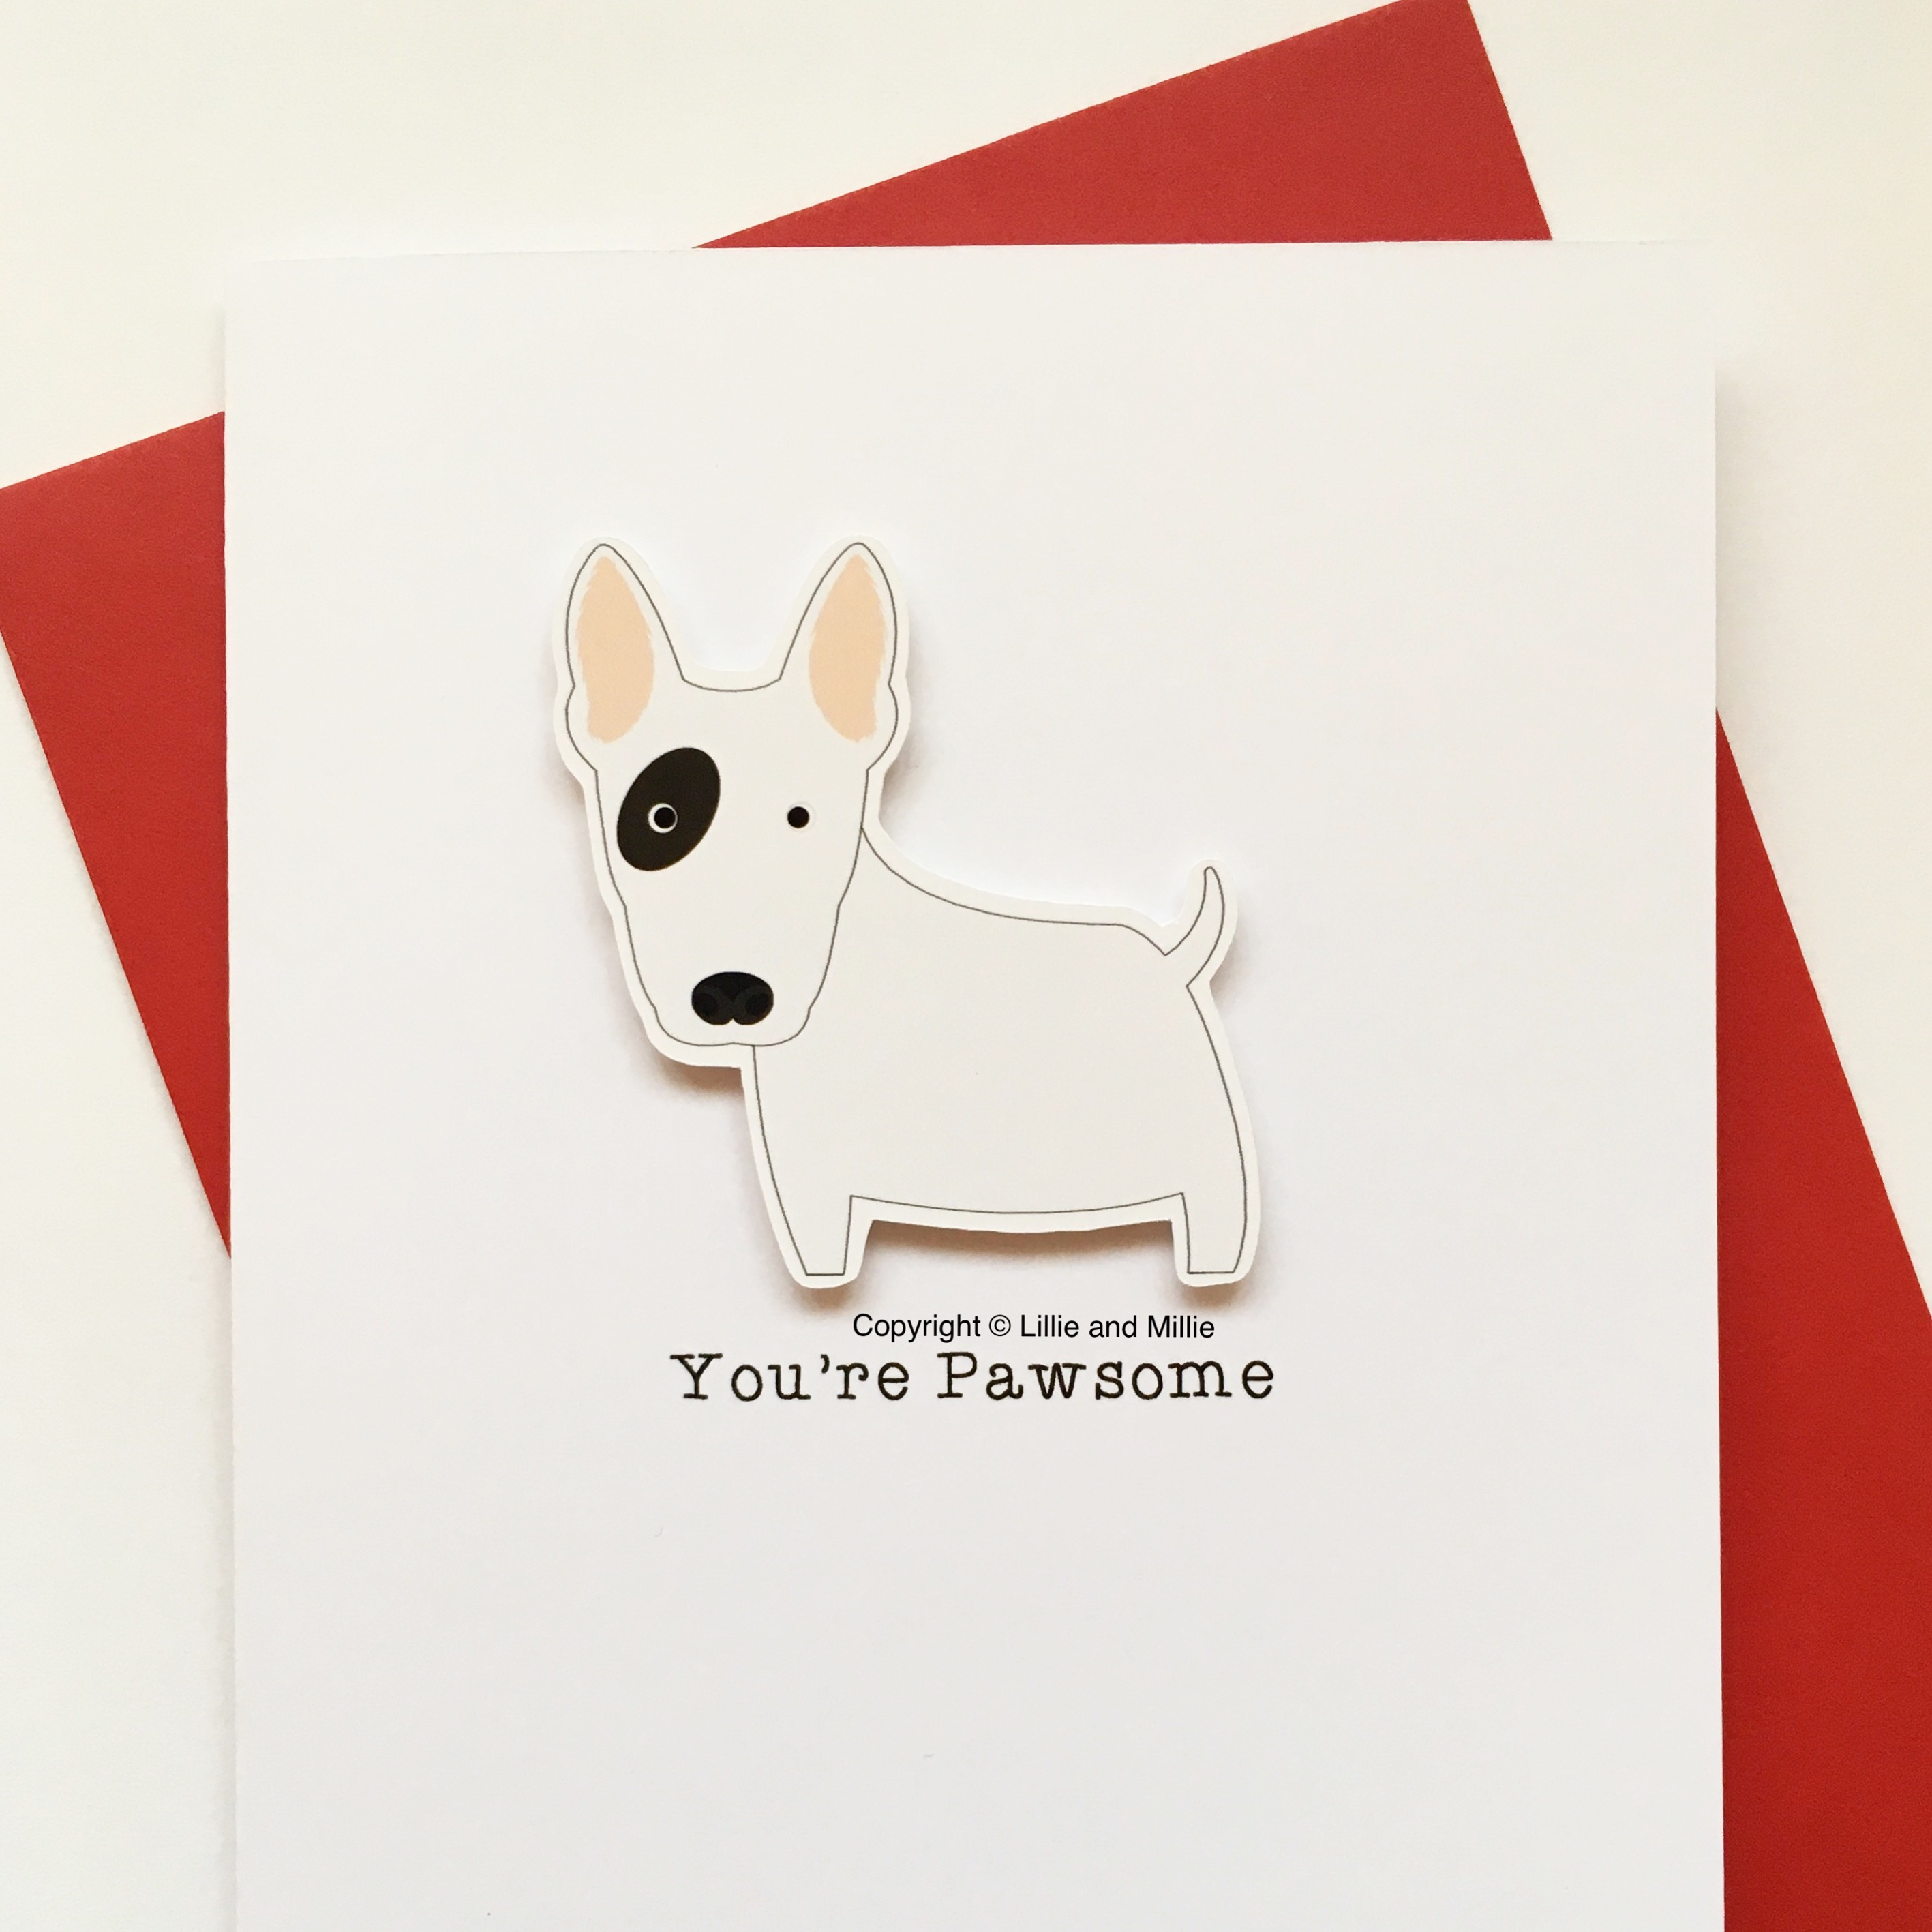 Cute and Cuddly Eye Patch Bull Terrier Pawsome Card